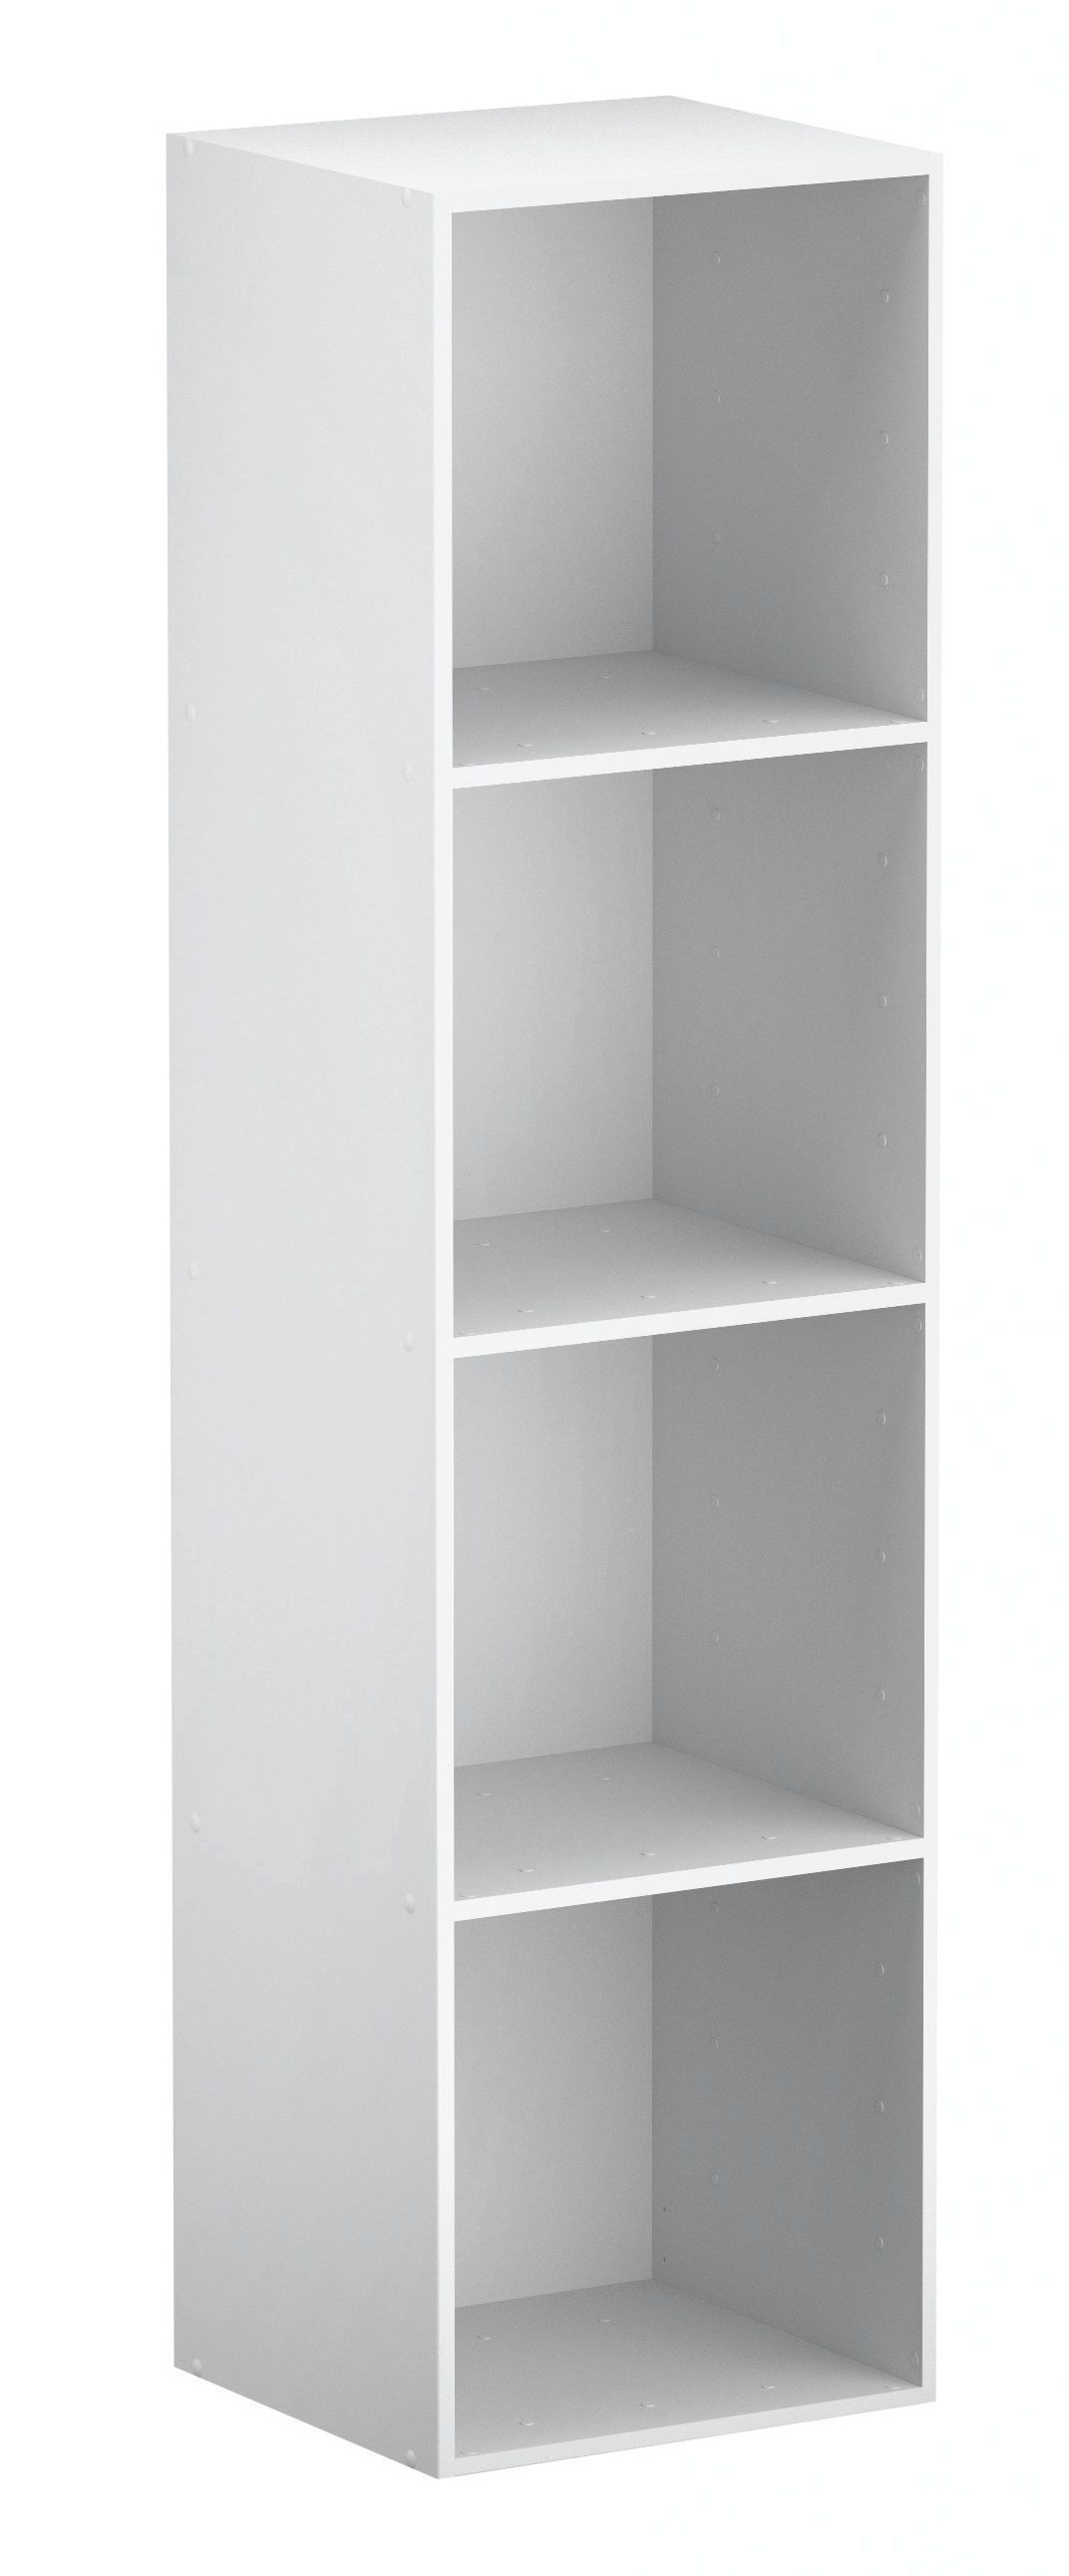 Bathroom Cabinets Uk Bq Form Konnect White 4 Cube Shelving Unit H1372mm W352mm